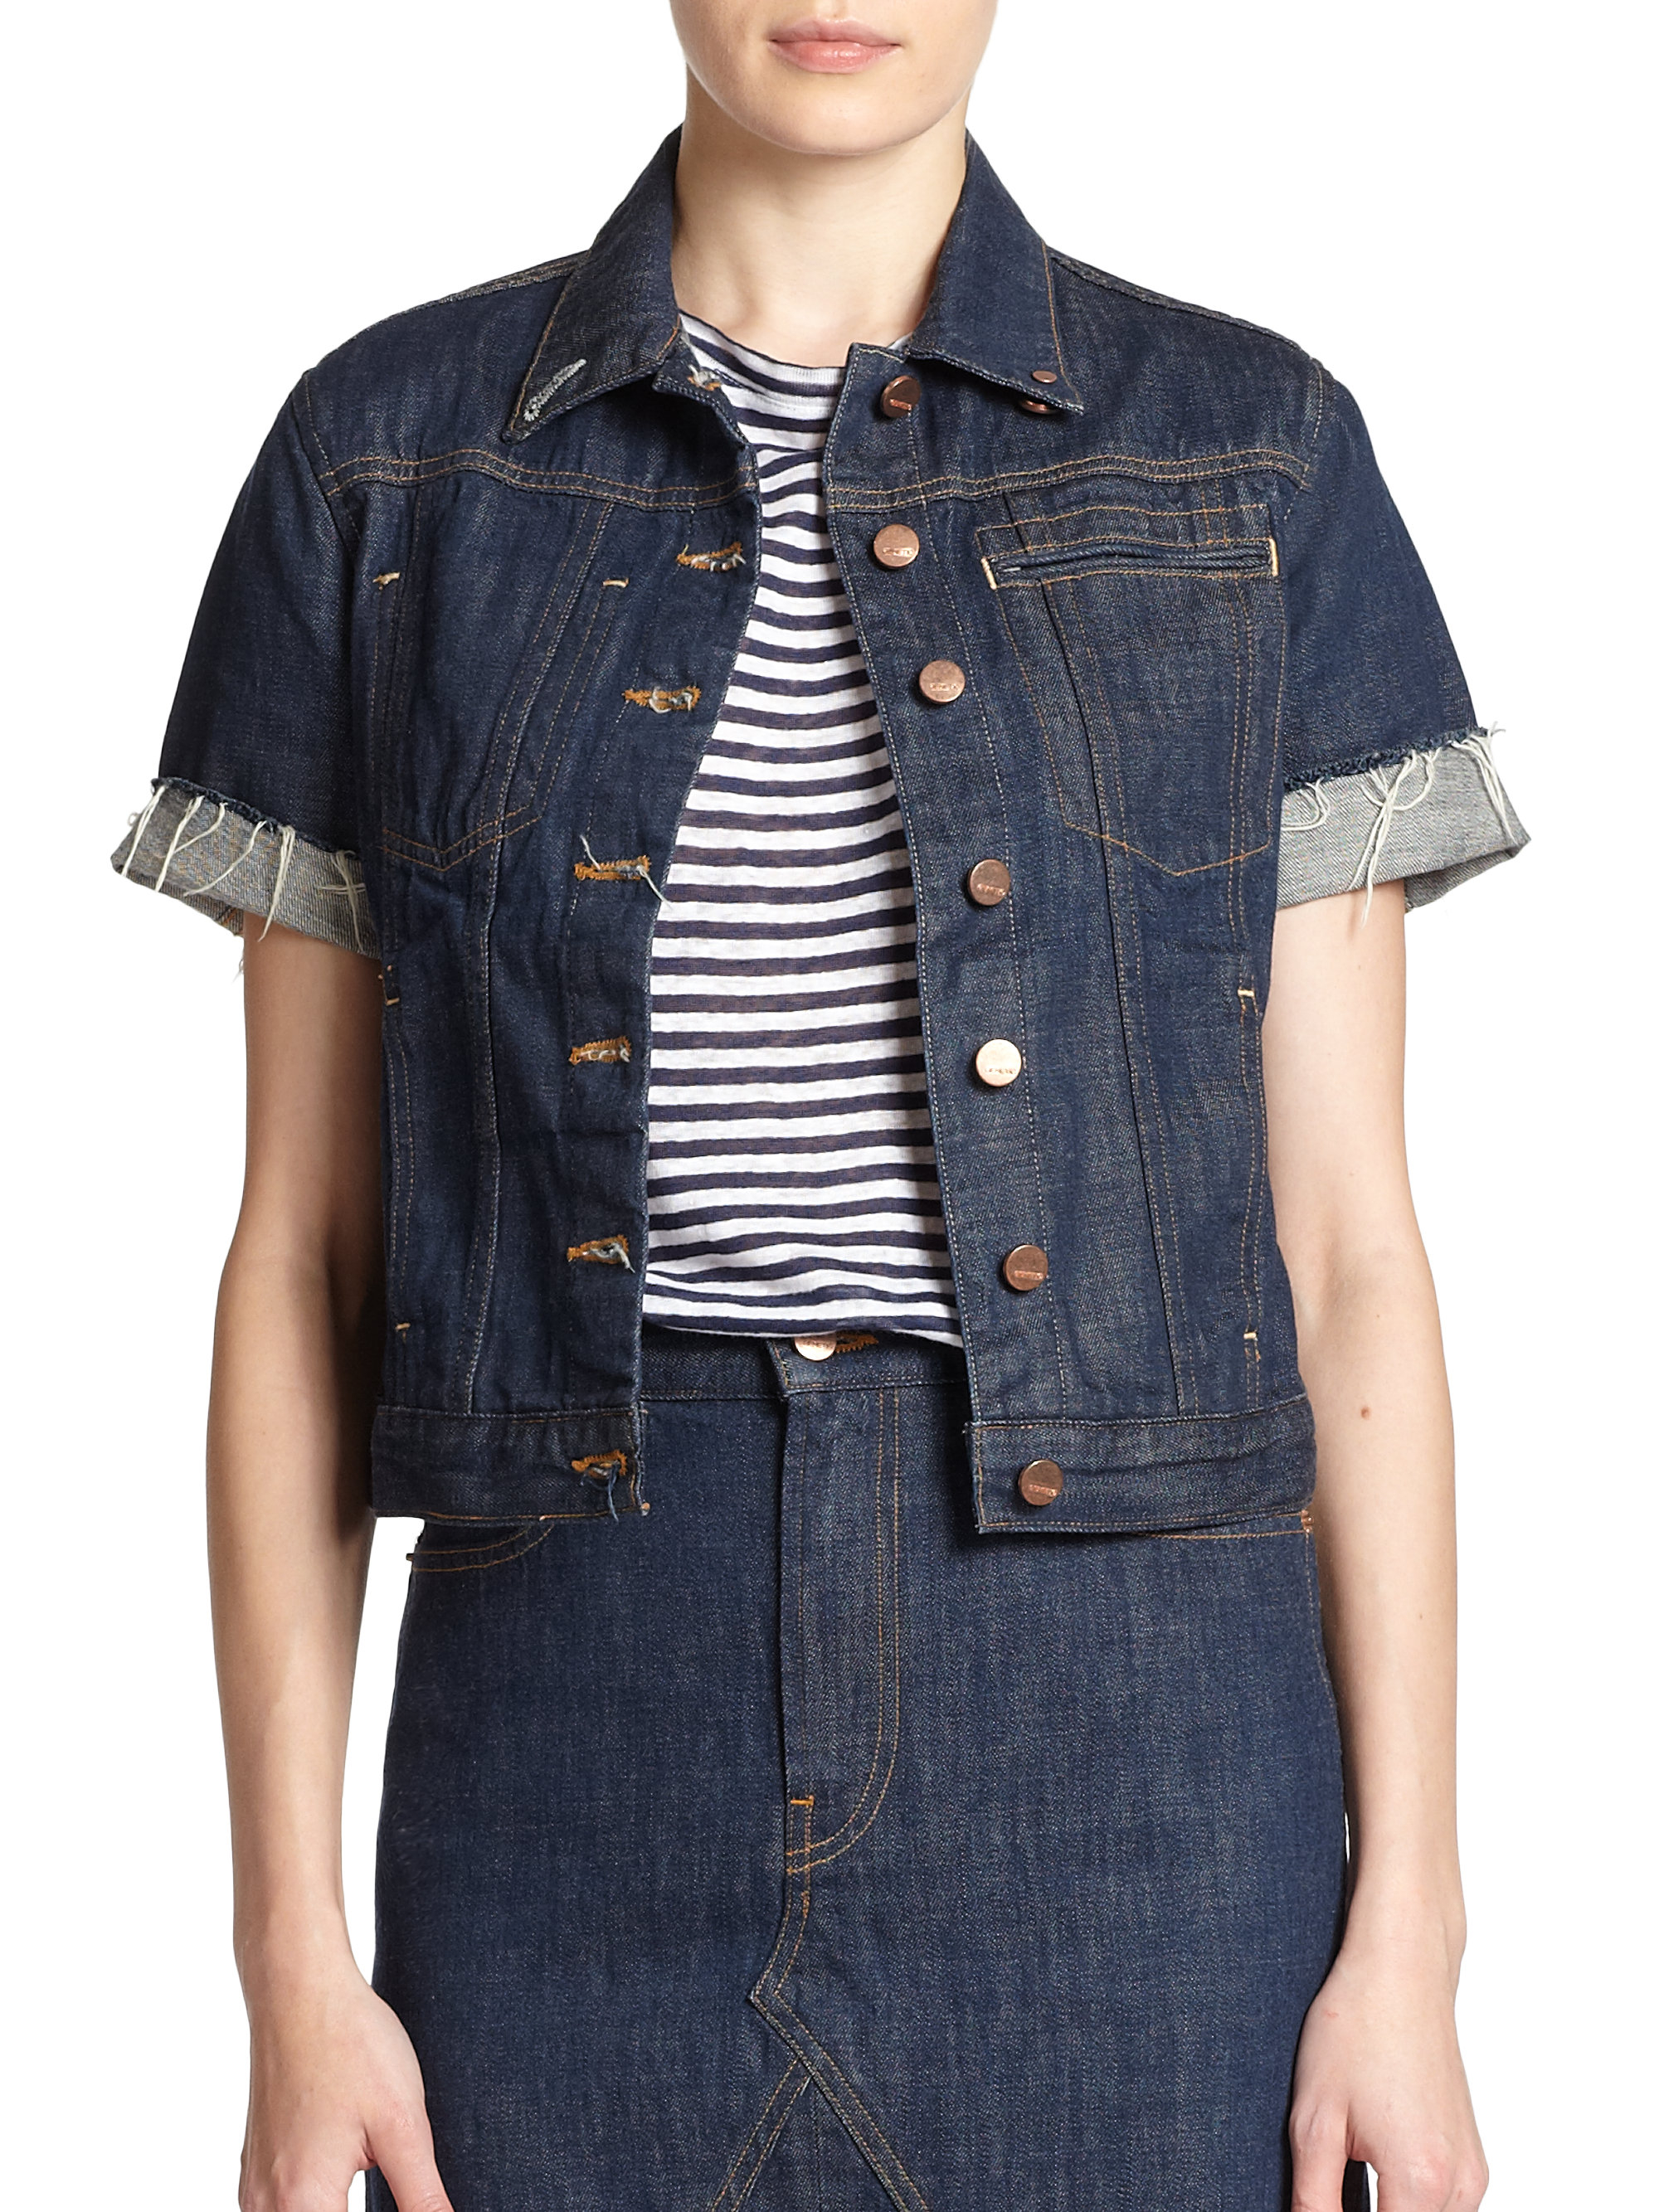 Genetic denim Blondie Short-Sleeve Denim Jacket in Blue | Lyst